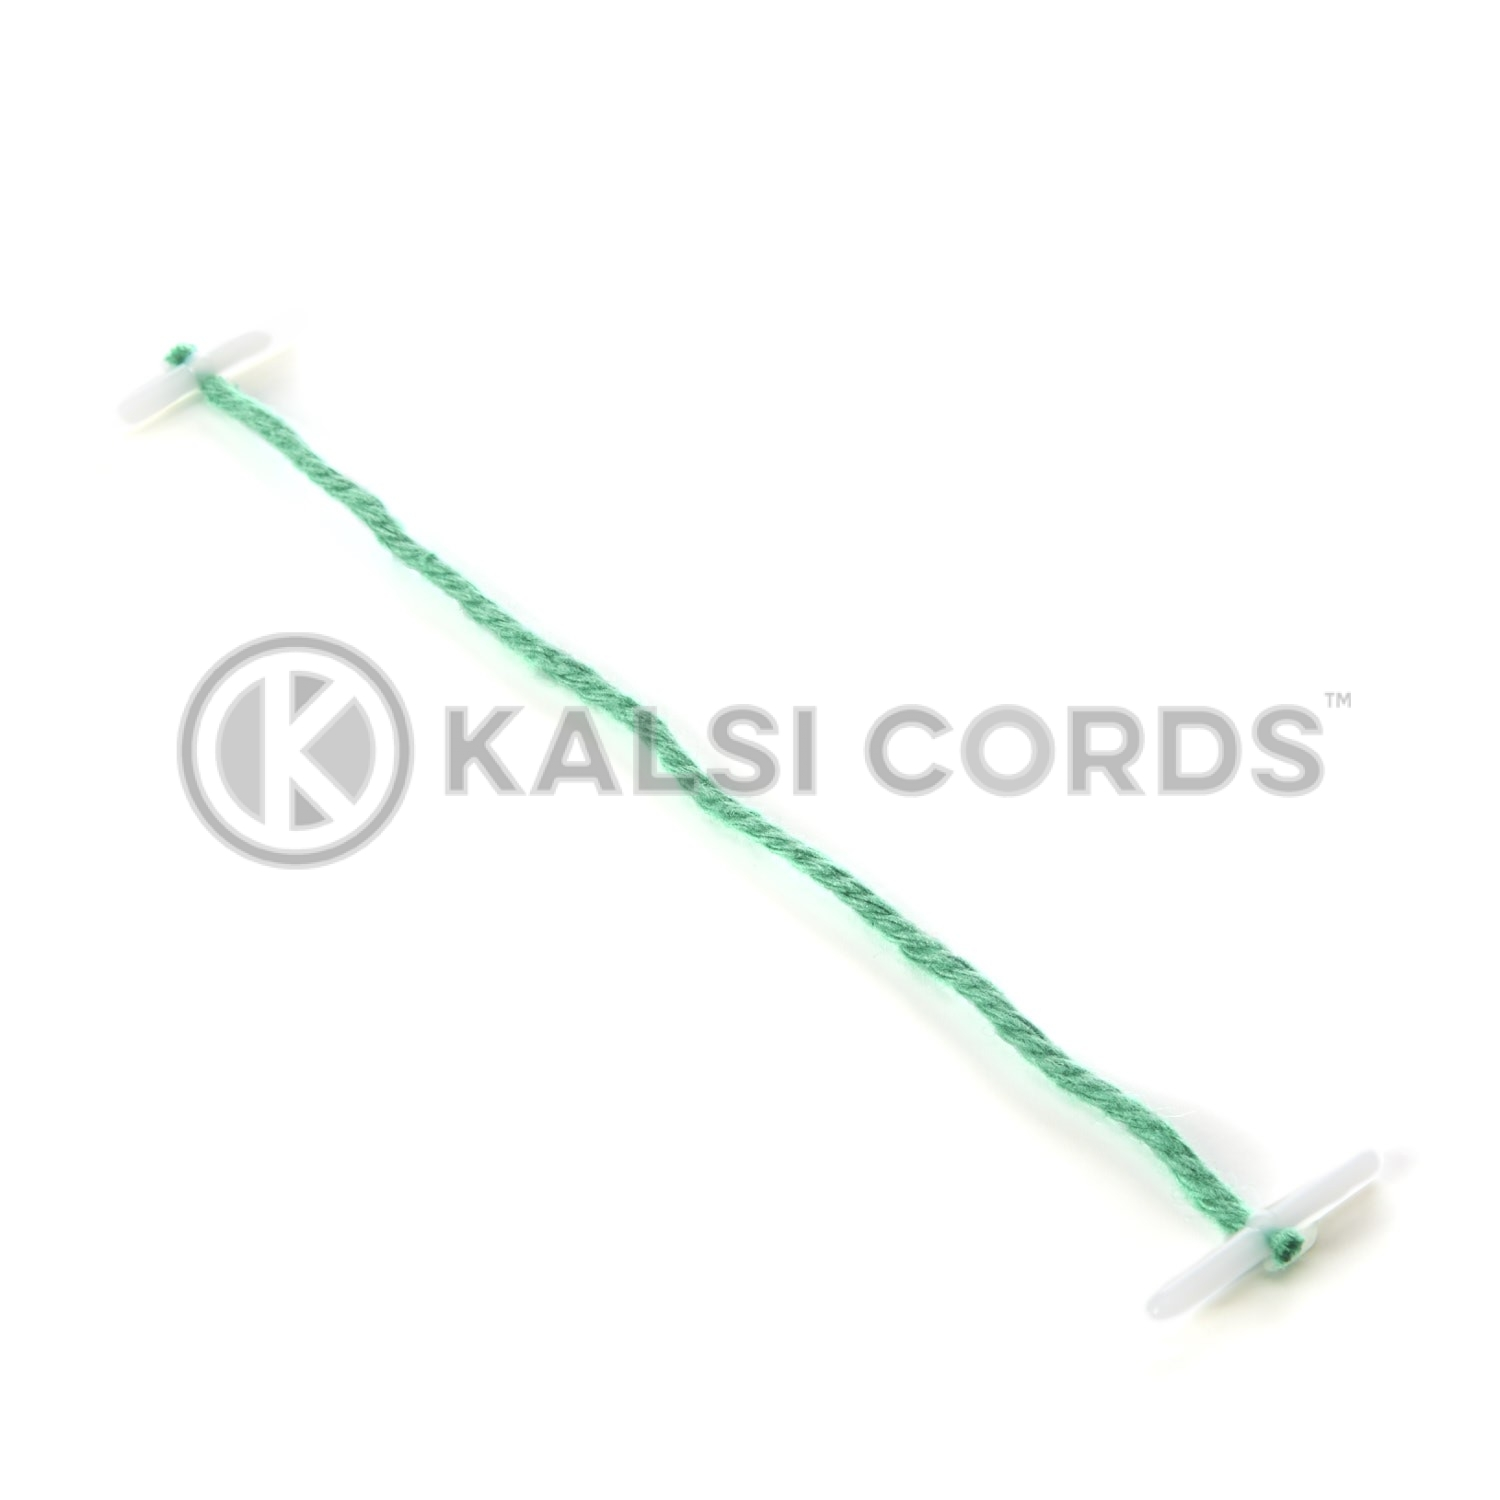 5 Inch 127mm Green Plastic Treasury Tags Cotton T Bar Paper Fasteners Bind Paper Documents Alternative Paper Clips Staples Secure Hold Together Kalsi Cords